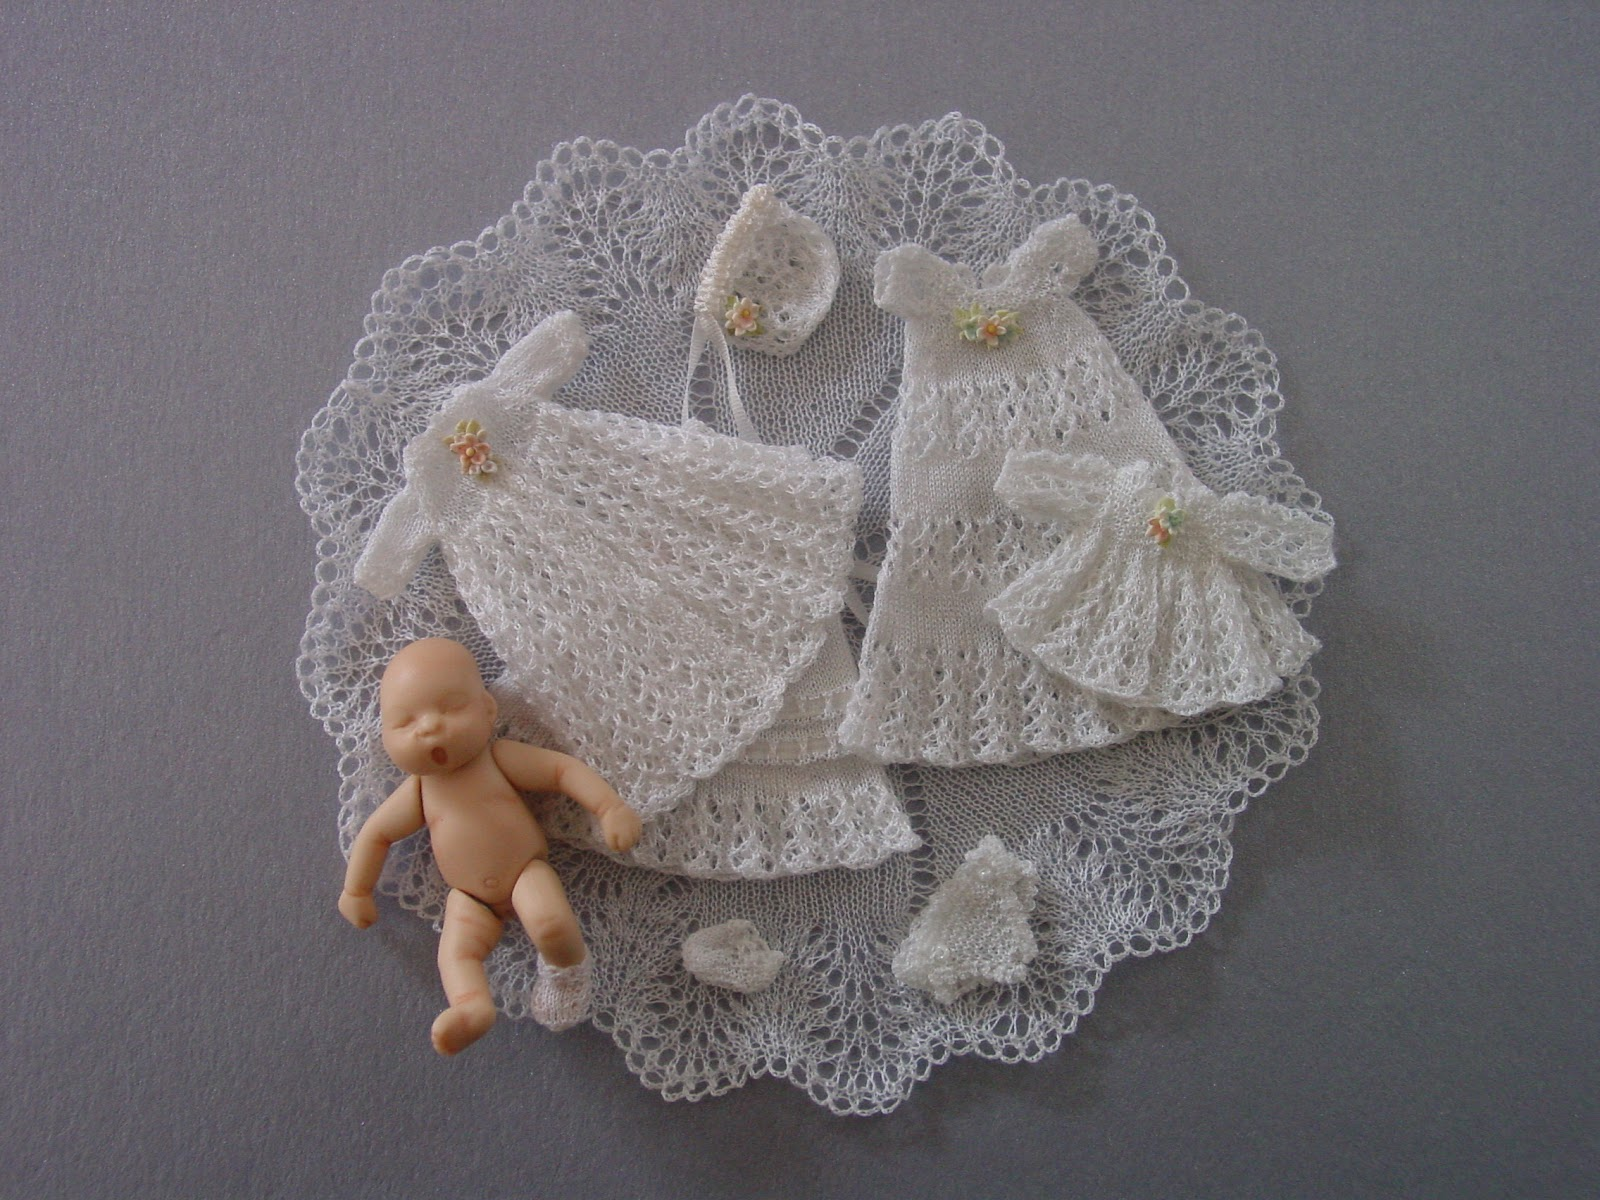 Miniature Knitting Patterns Patterns Gallery